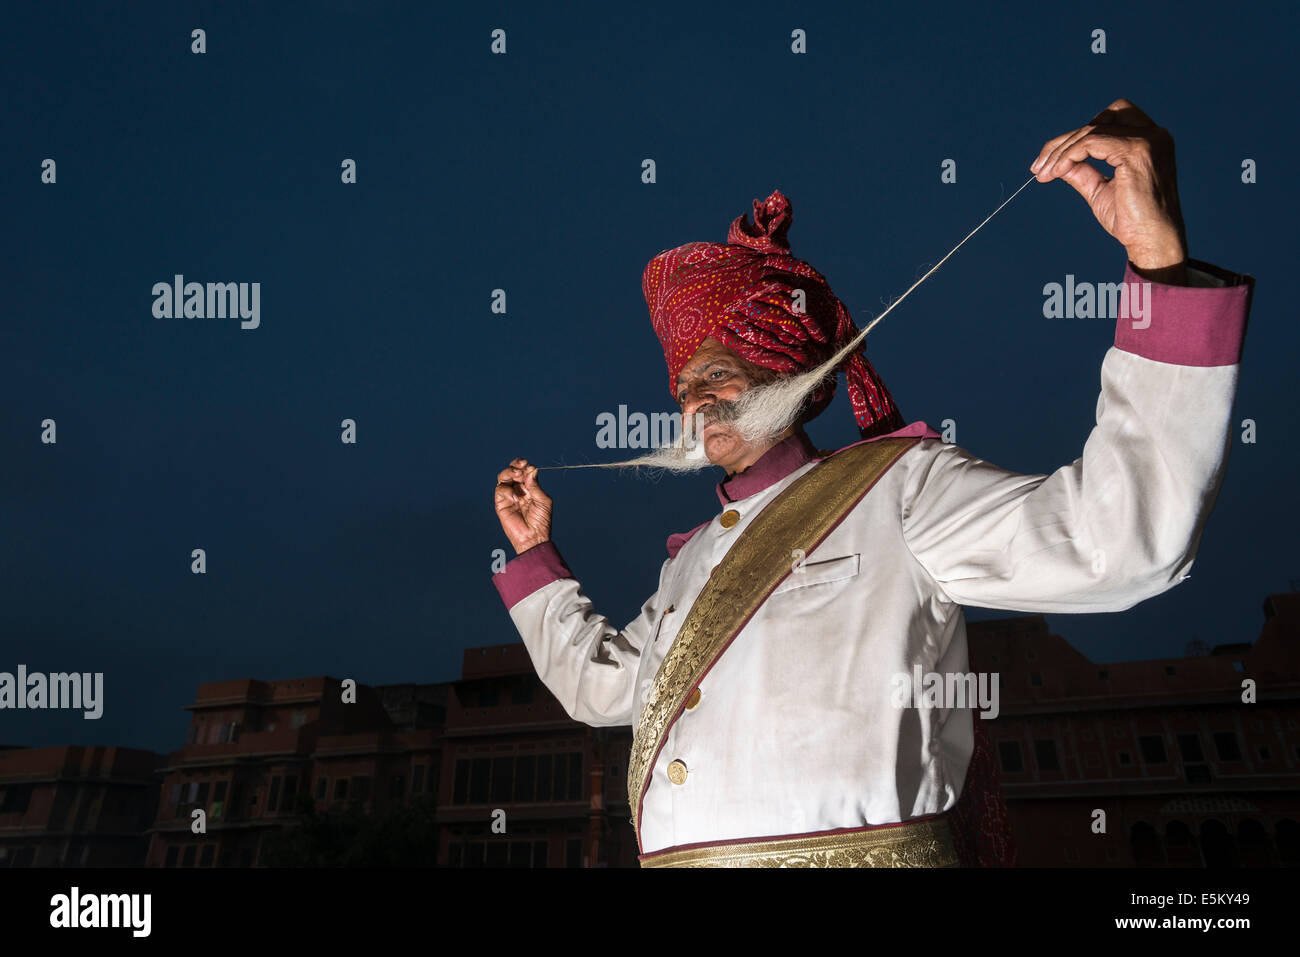 Local man proudly presenting his long mustache, Rajput people, Jaipur, Rajasthan, India Stock Photo